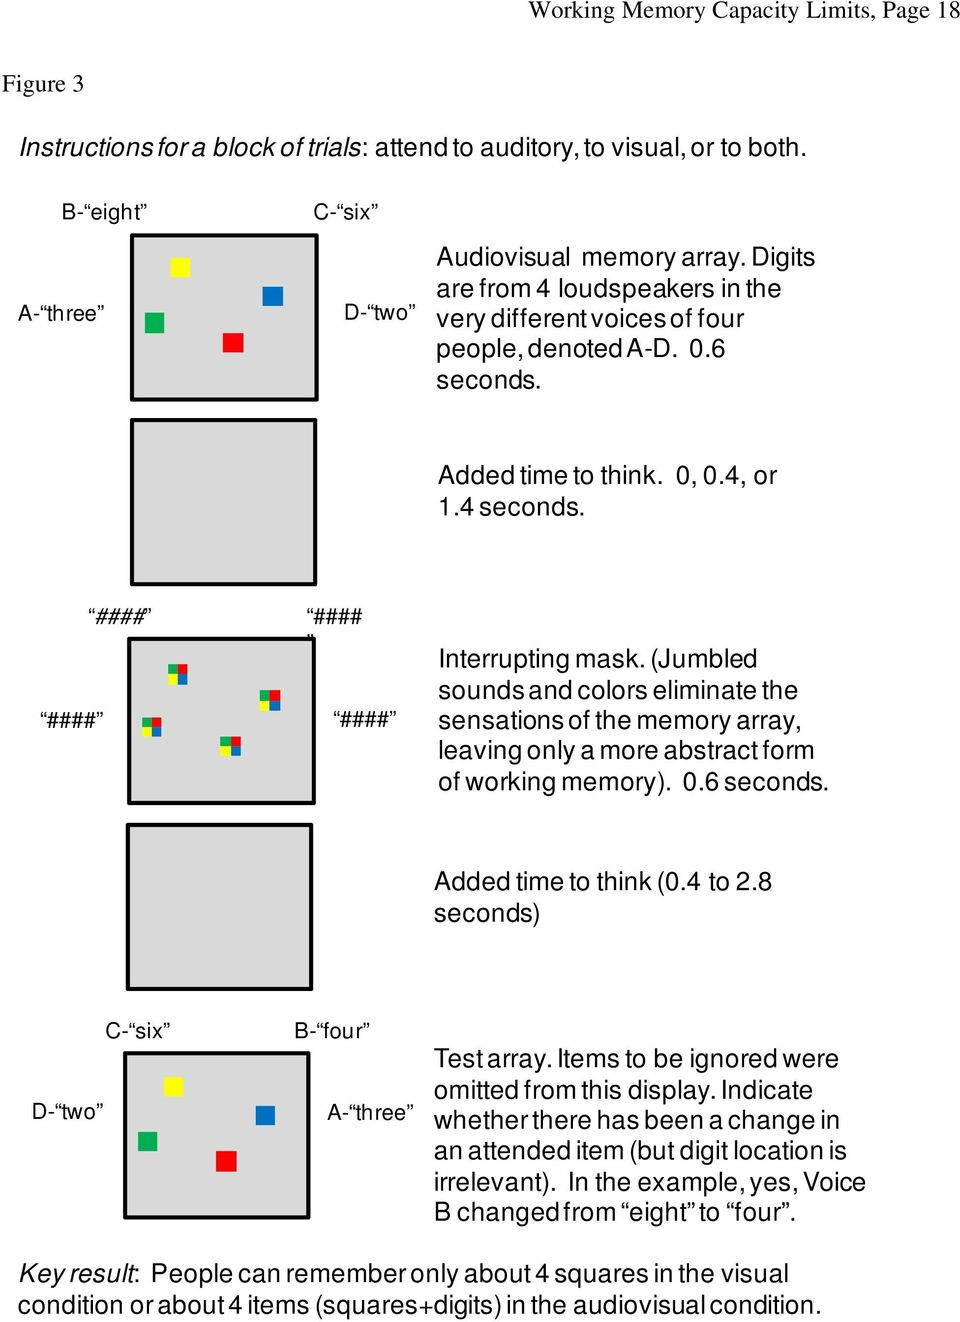 (Jumbled sounds and colors eliminate the sensations of the memory array, leaving only a more abstract form of working memory). 0.6 seconds. Added time to think (0.4 to 2.